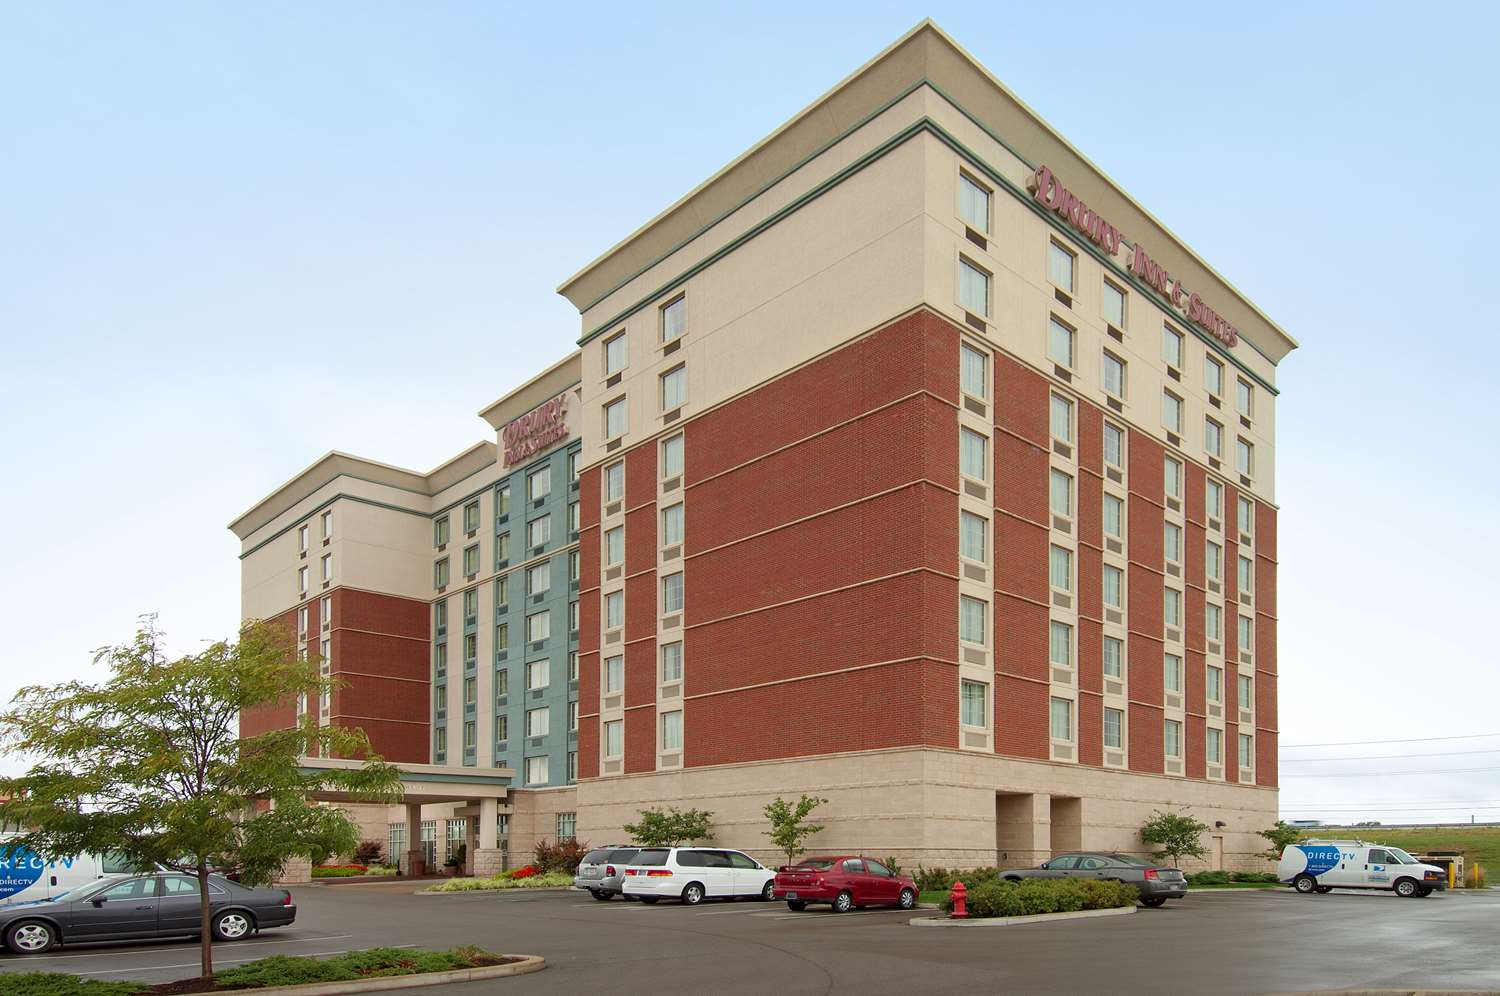 Drury Inn Suites Northeast Indianapolis